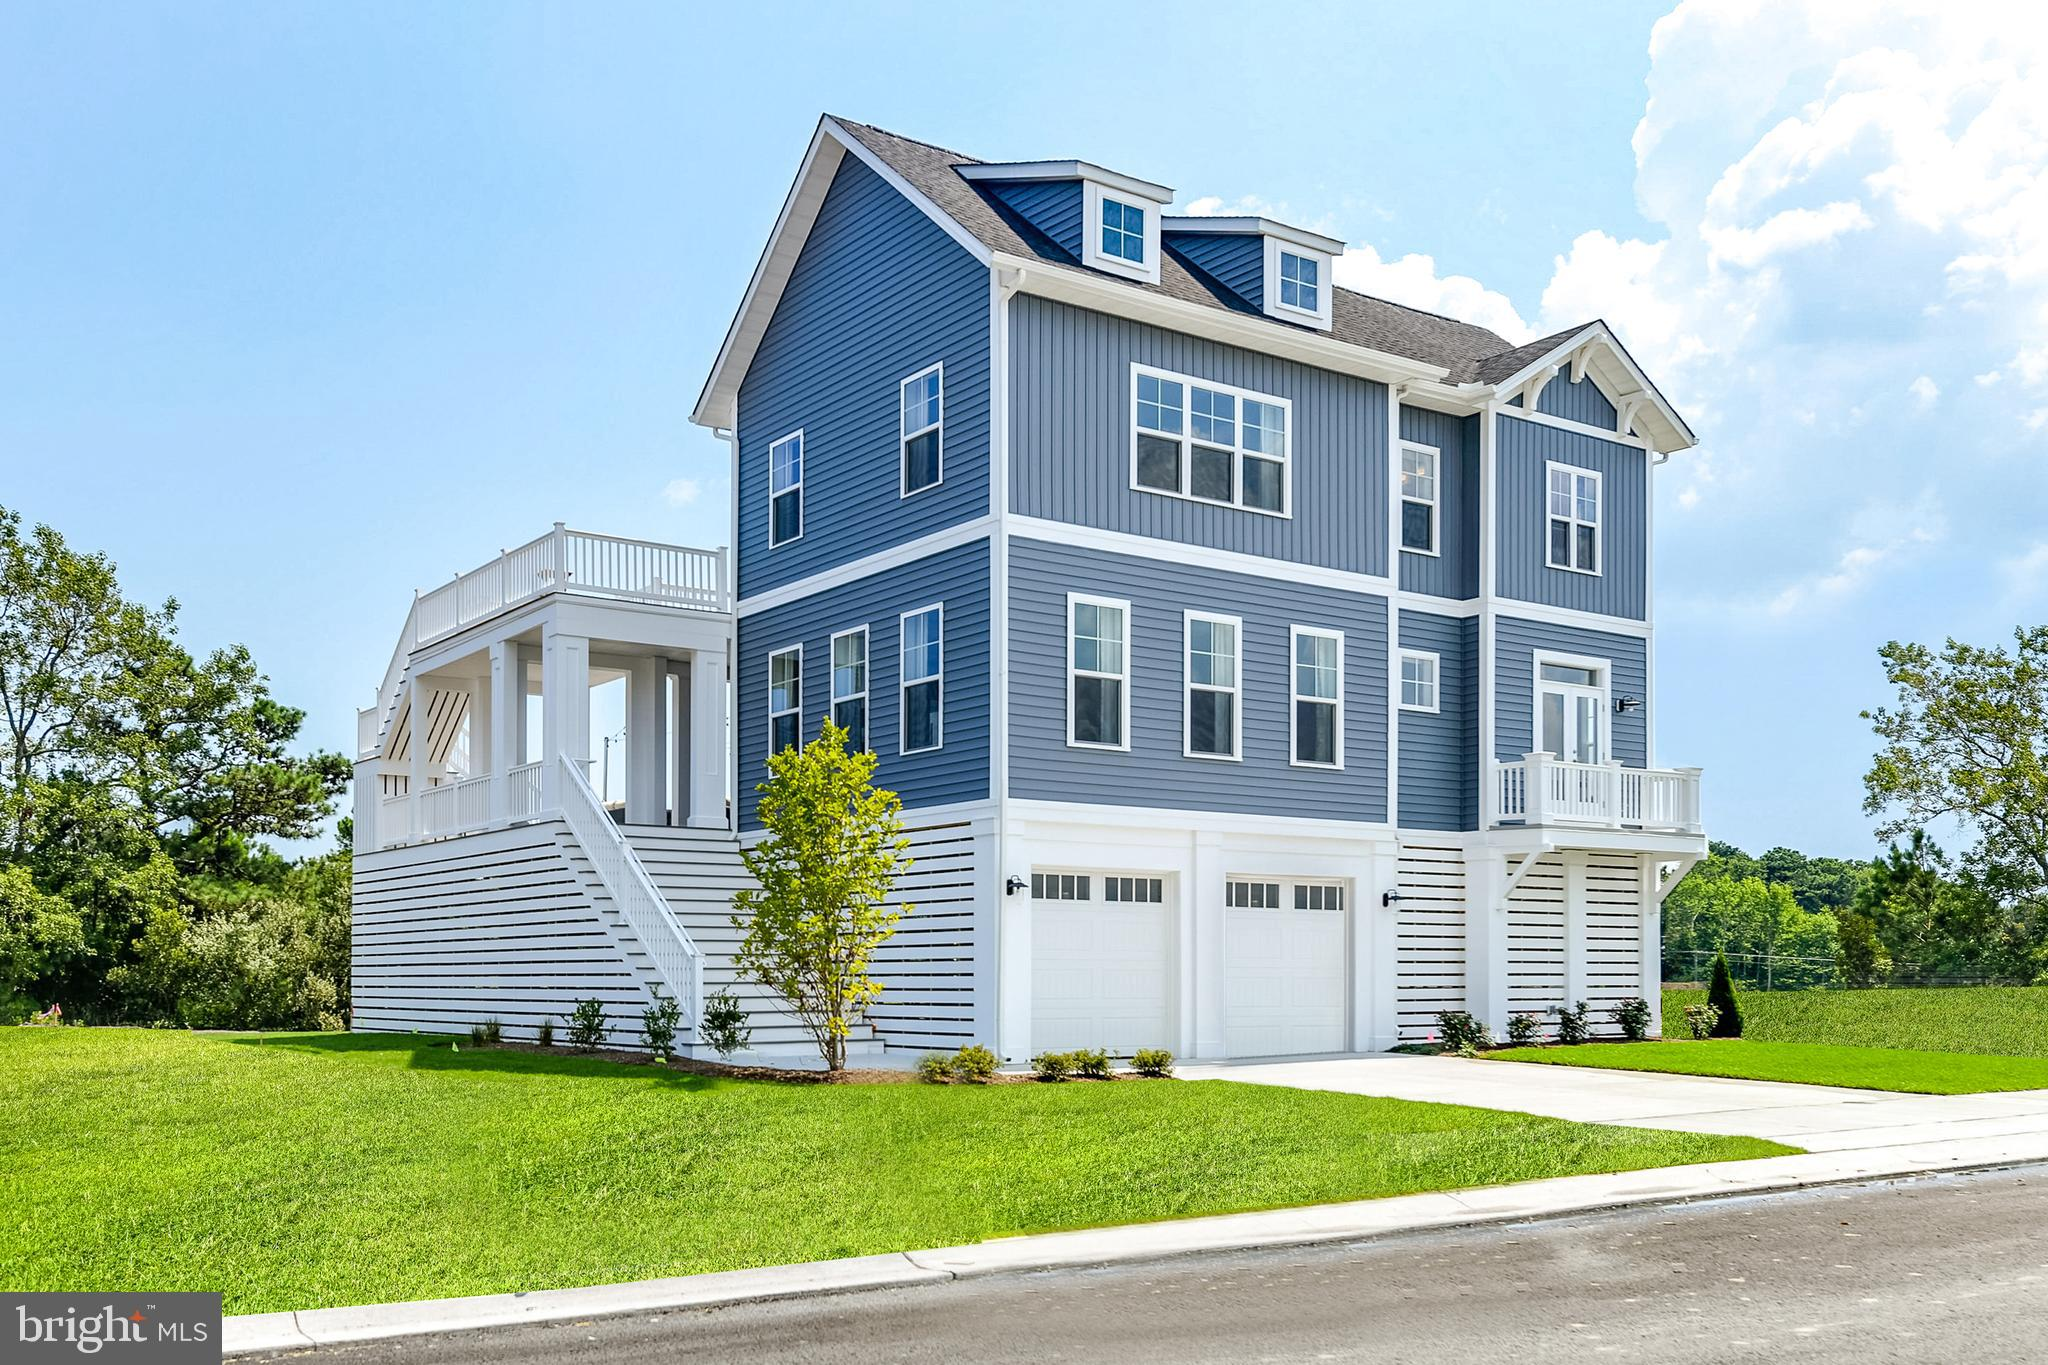 Welcome to White Creek at Bethany - This is a To Be Built home located on a beautiful corner lot ide